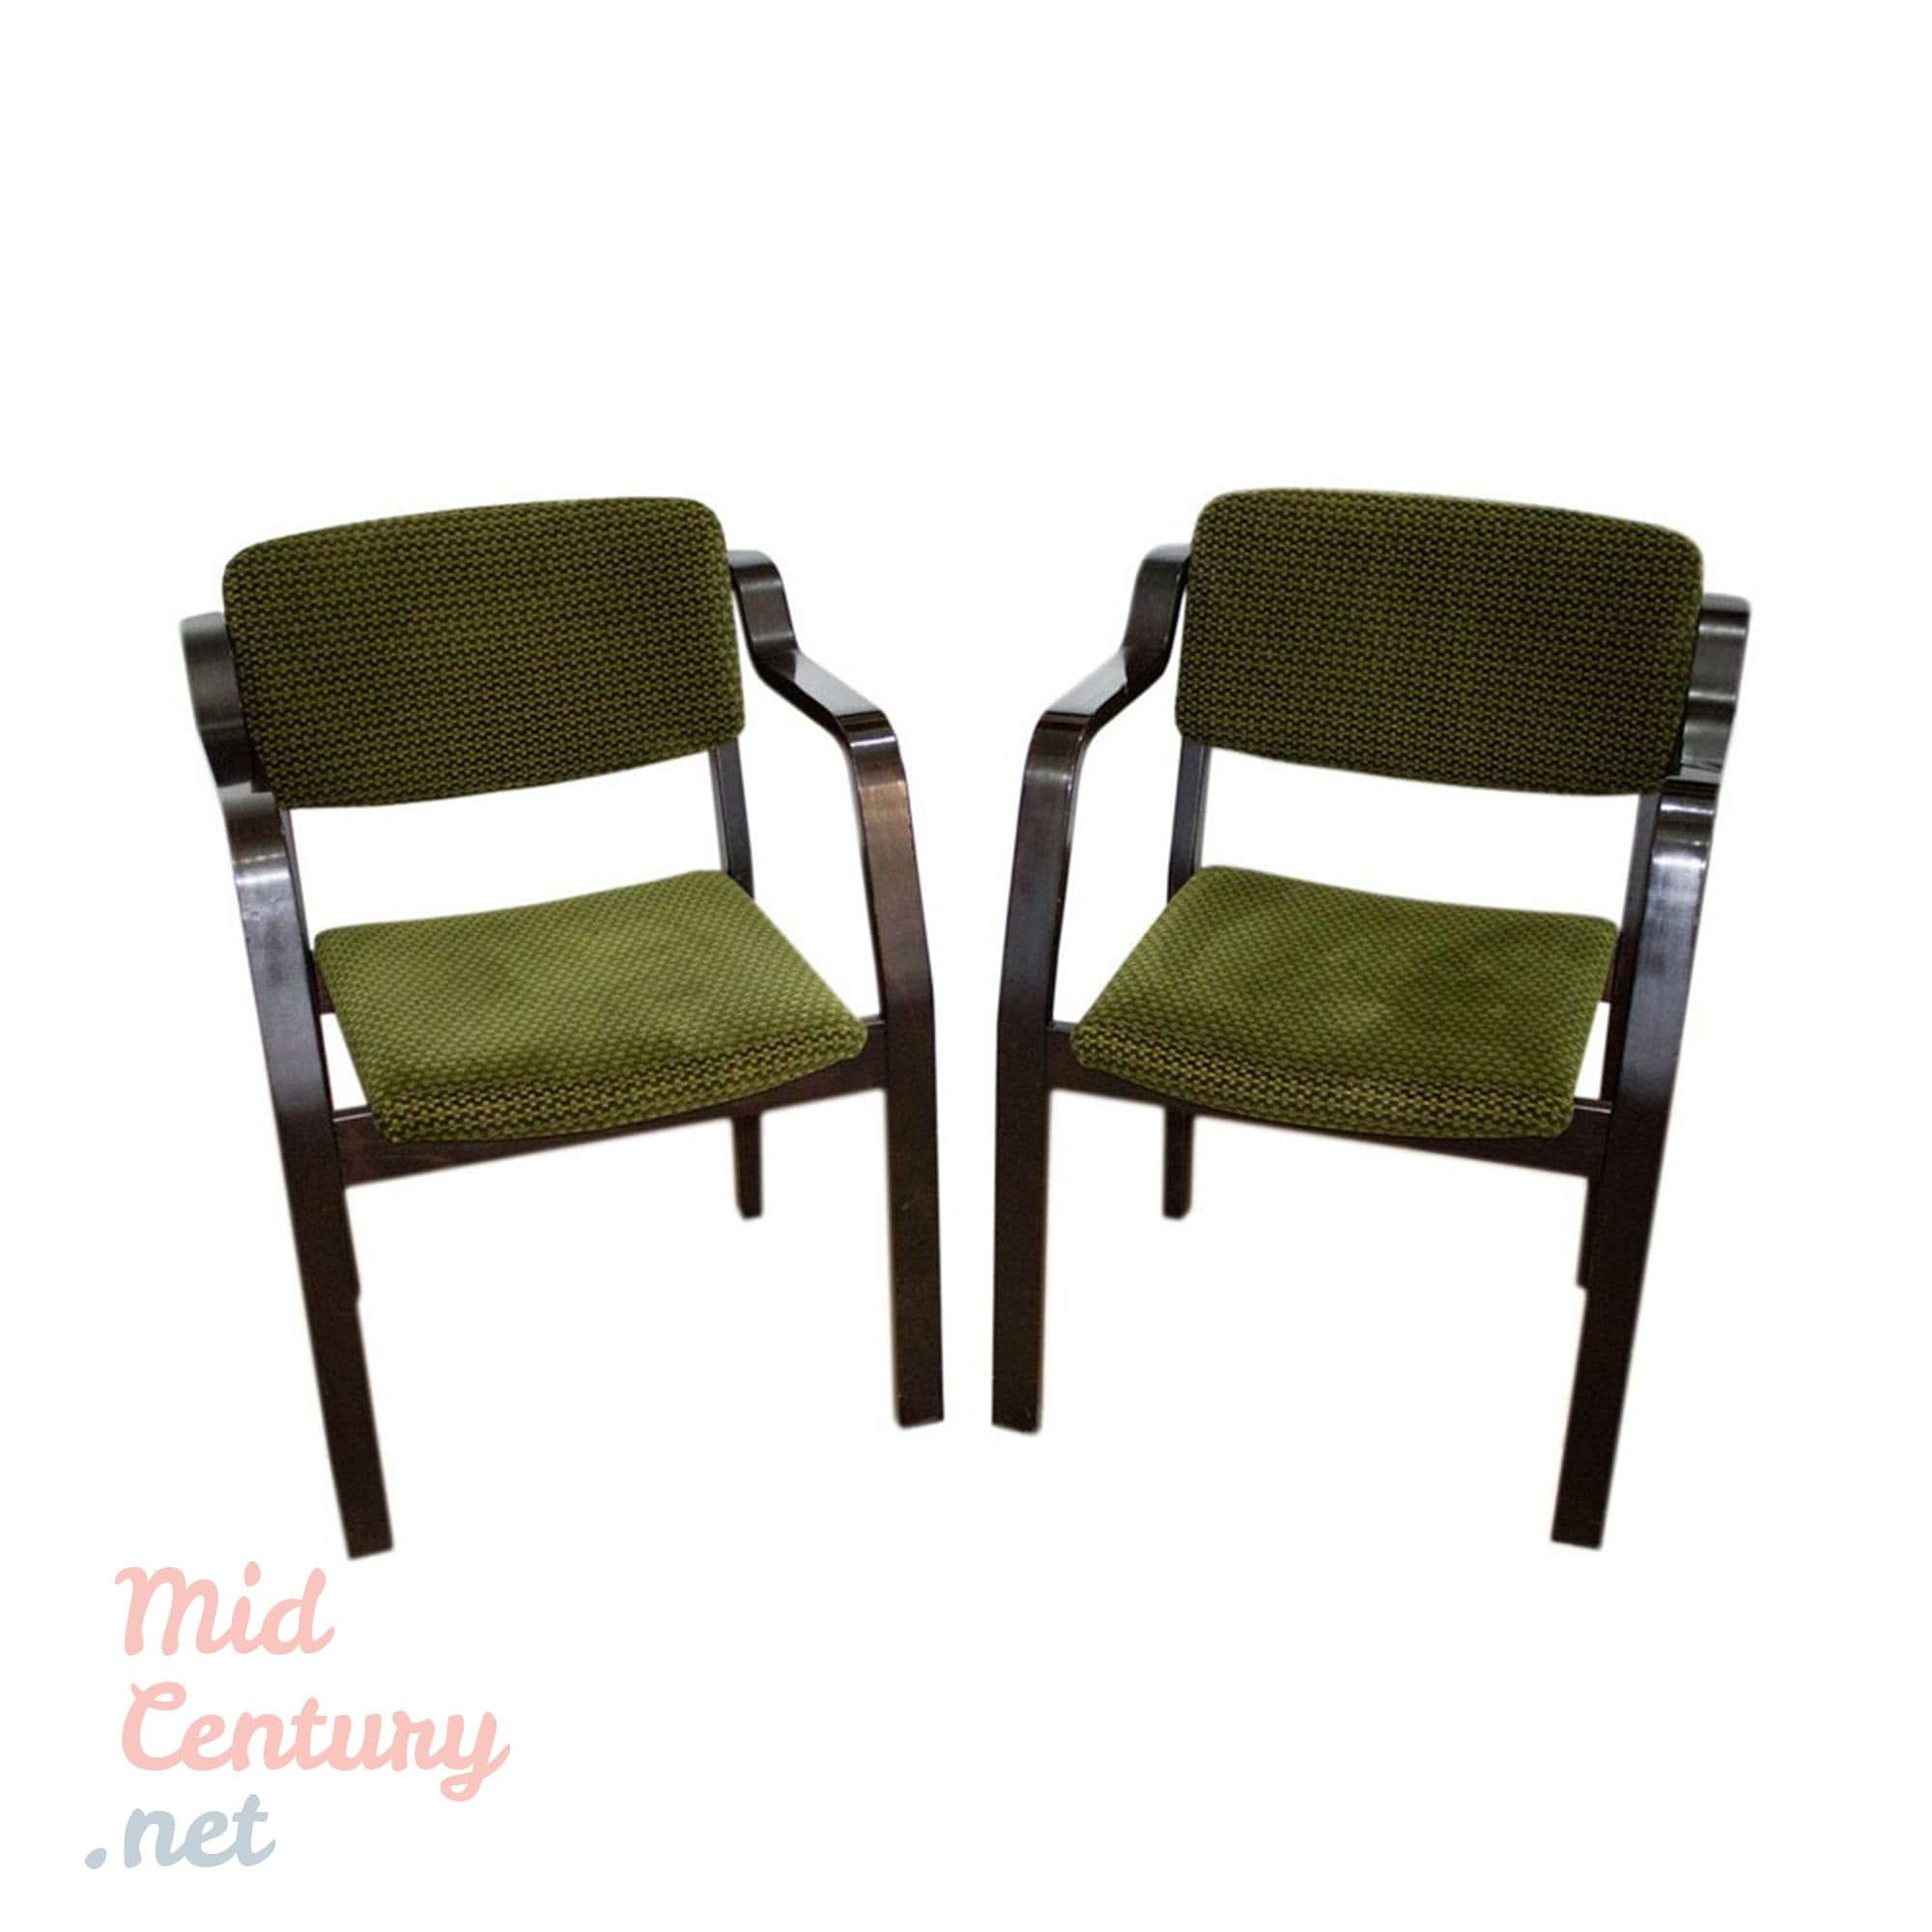 Pair of Gemla Möbler chairs